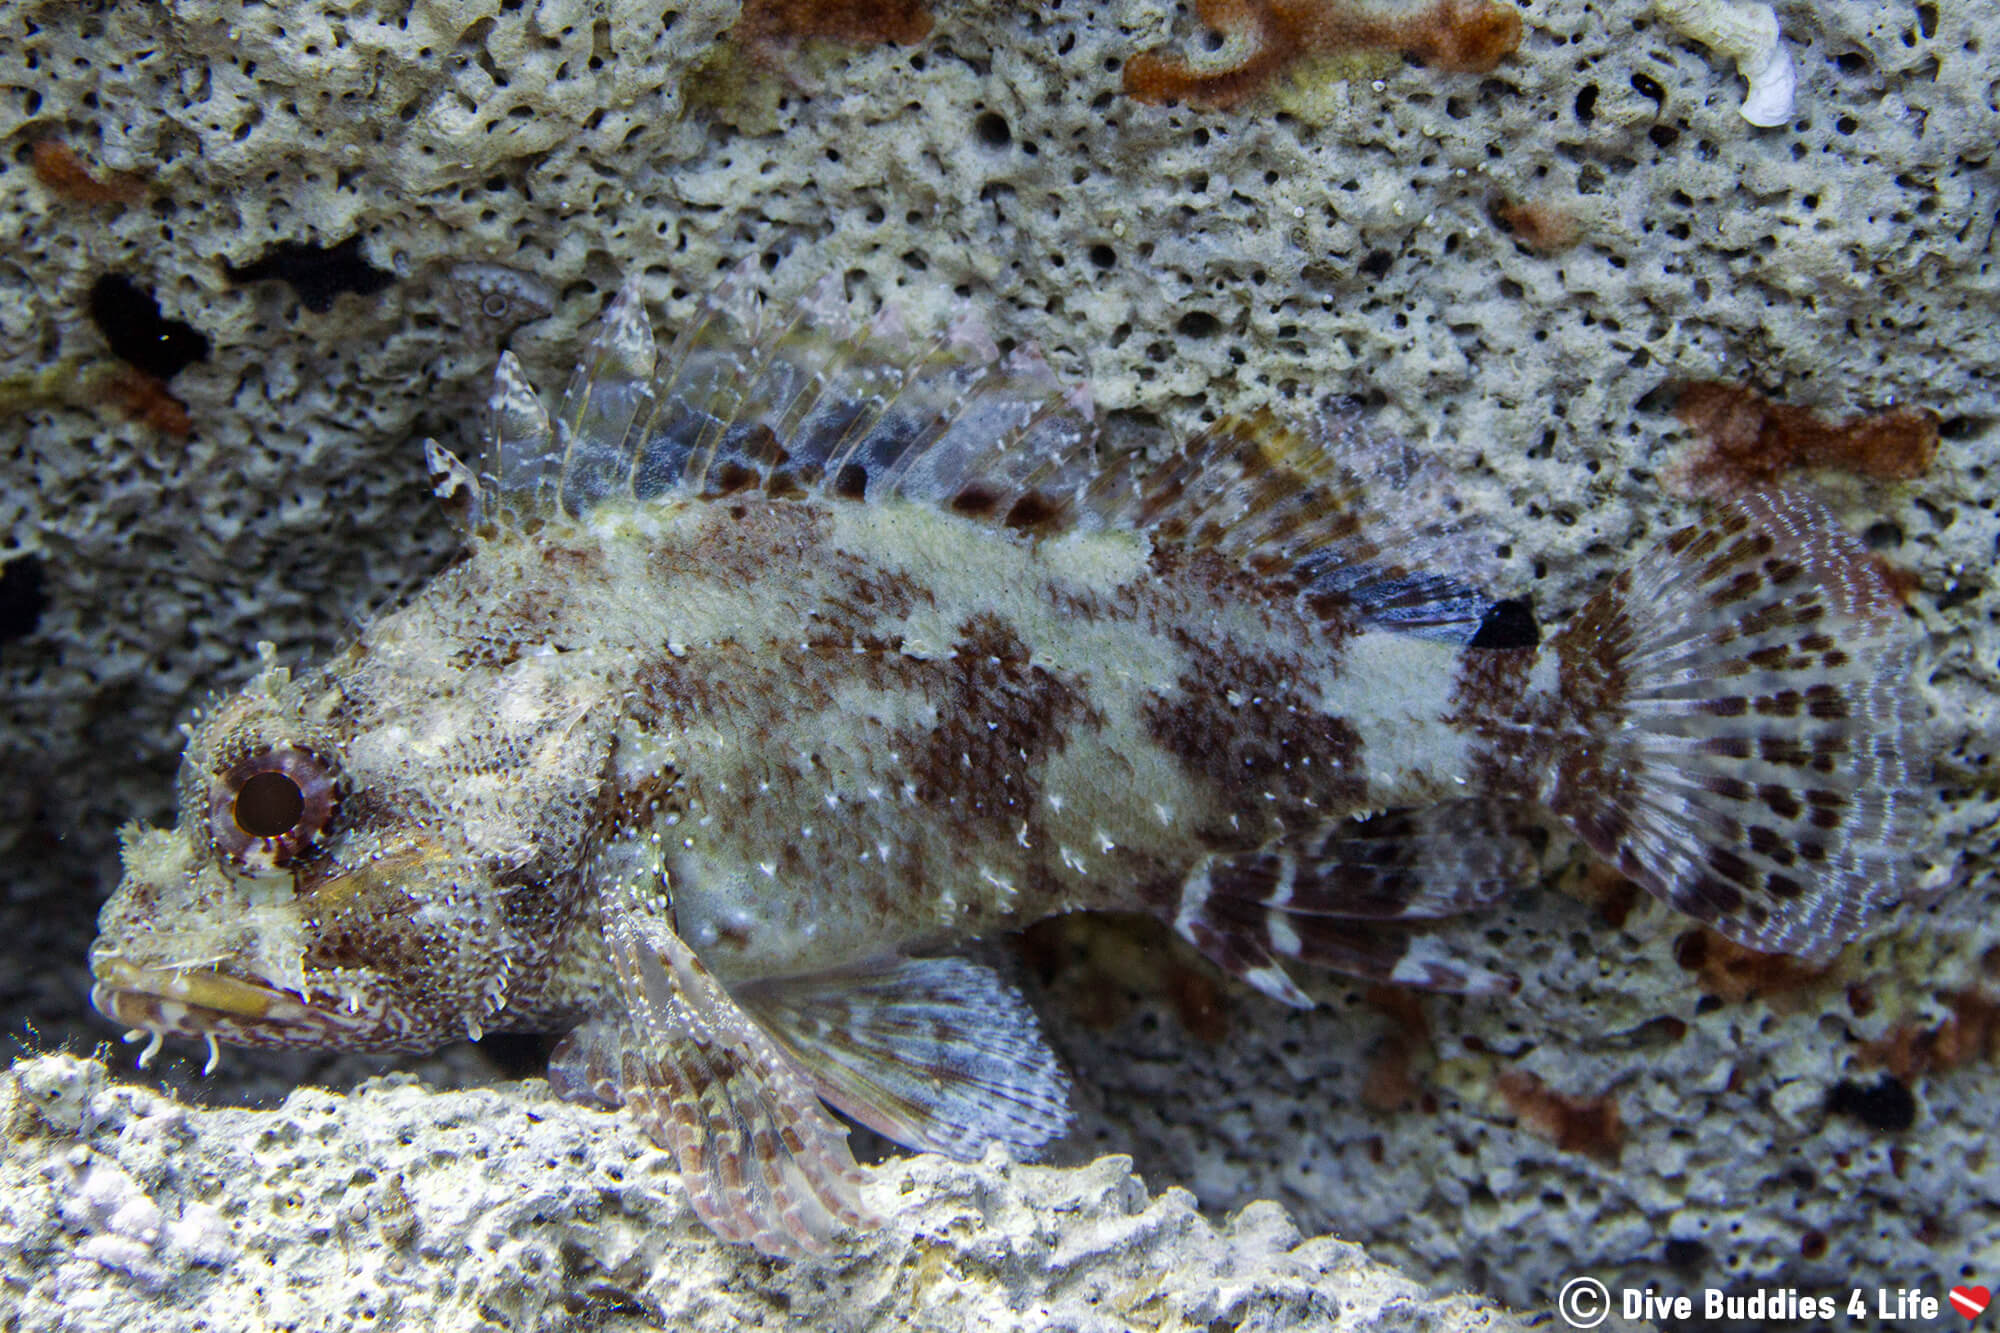 A Scorpion Fish Exhibiting Camouflage With The White Rock Behind It On Zakynthos Island, Greece